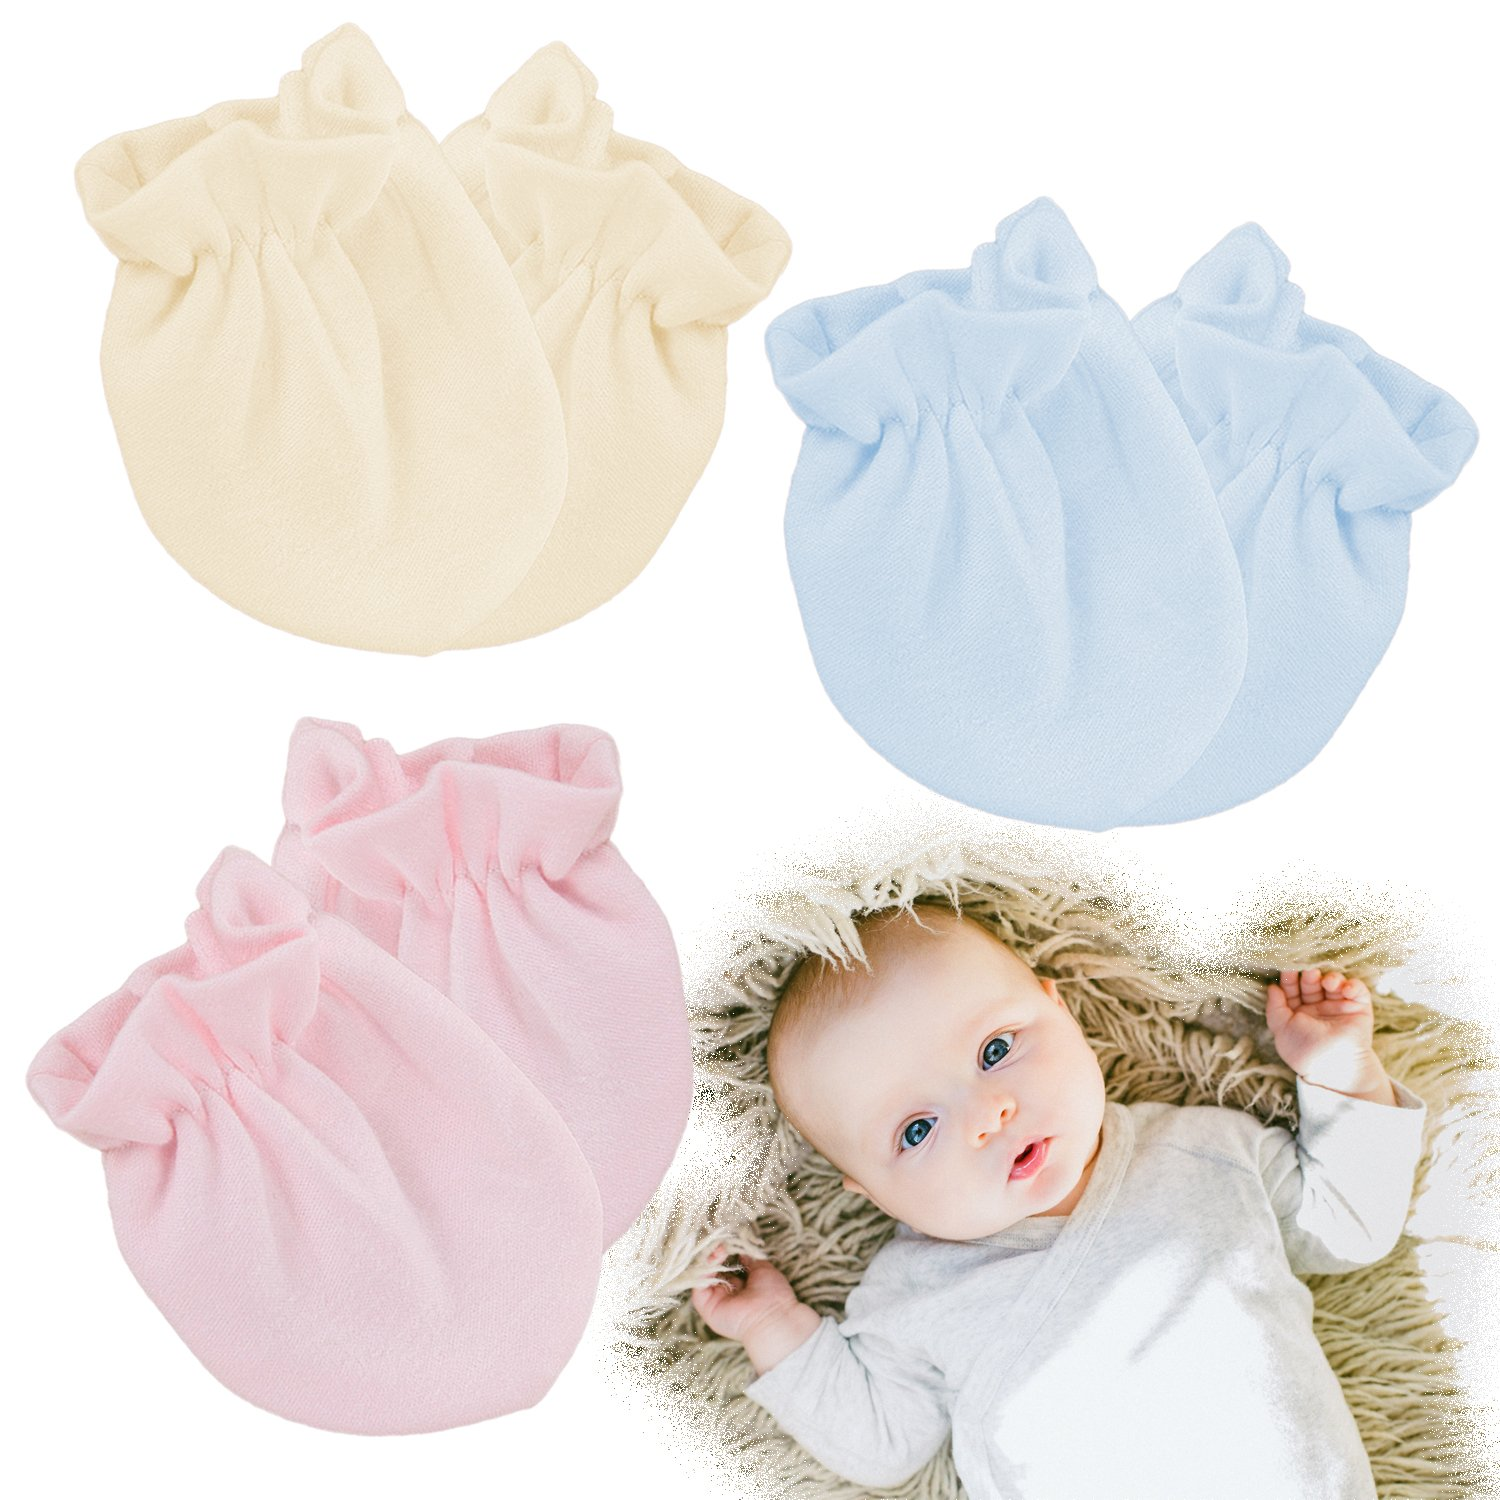 Kalevel 3 Pairs Baby Mittens No Scratch Newborn Gloves 0-6 Months Organic Cotton (Mixed Colors)